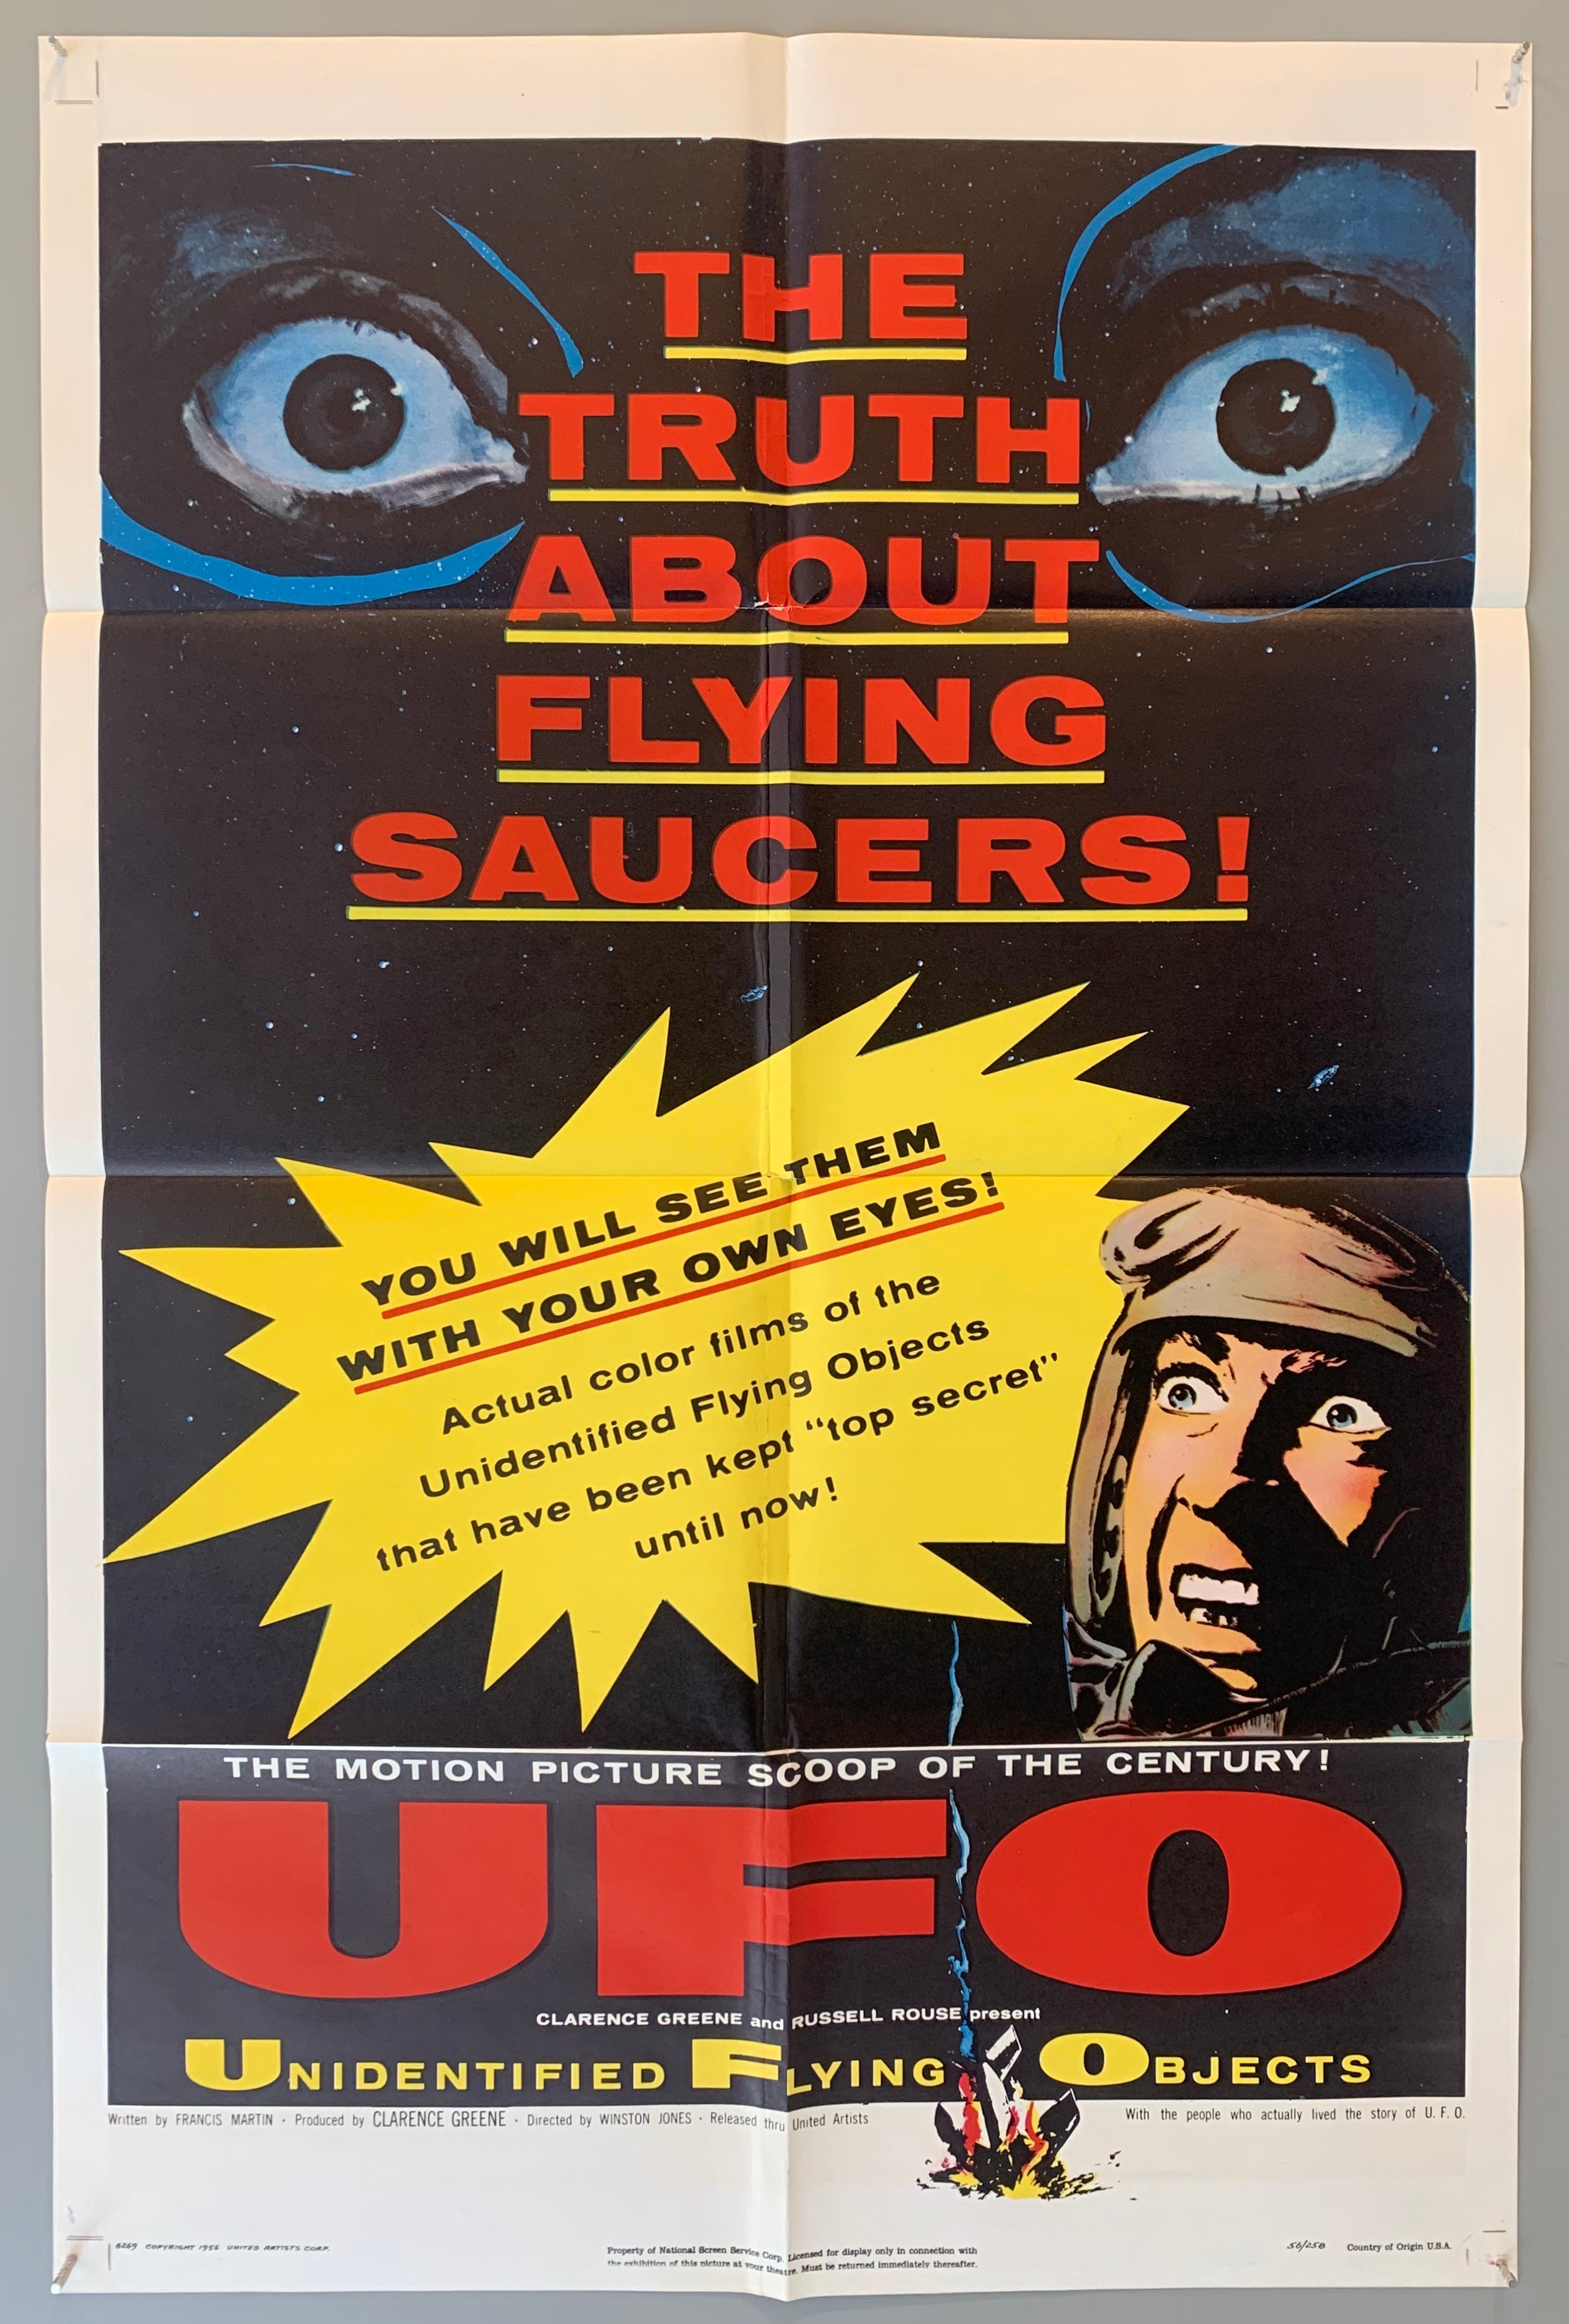 The Truth about Flying Saucers! UFO